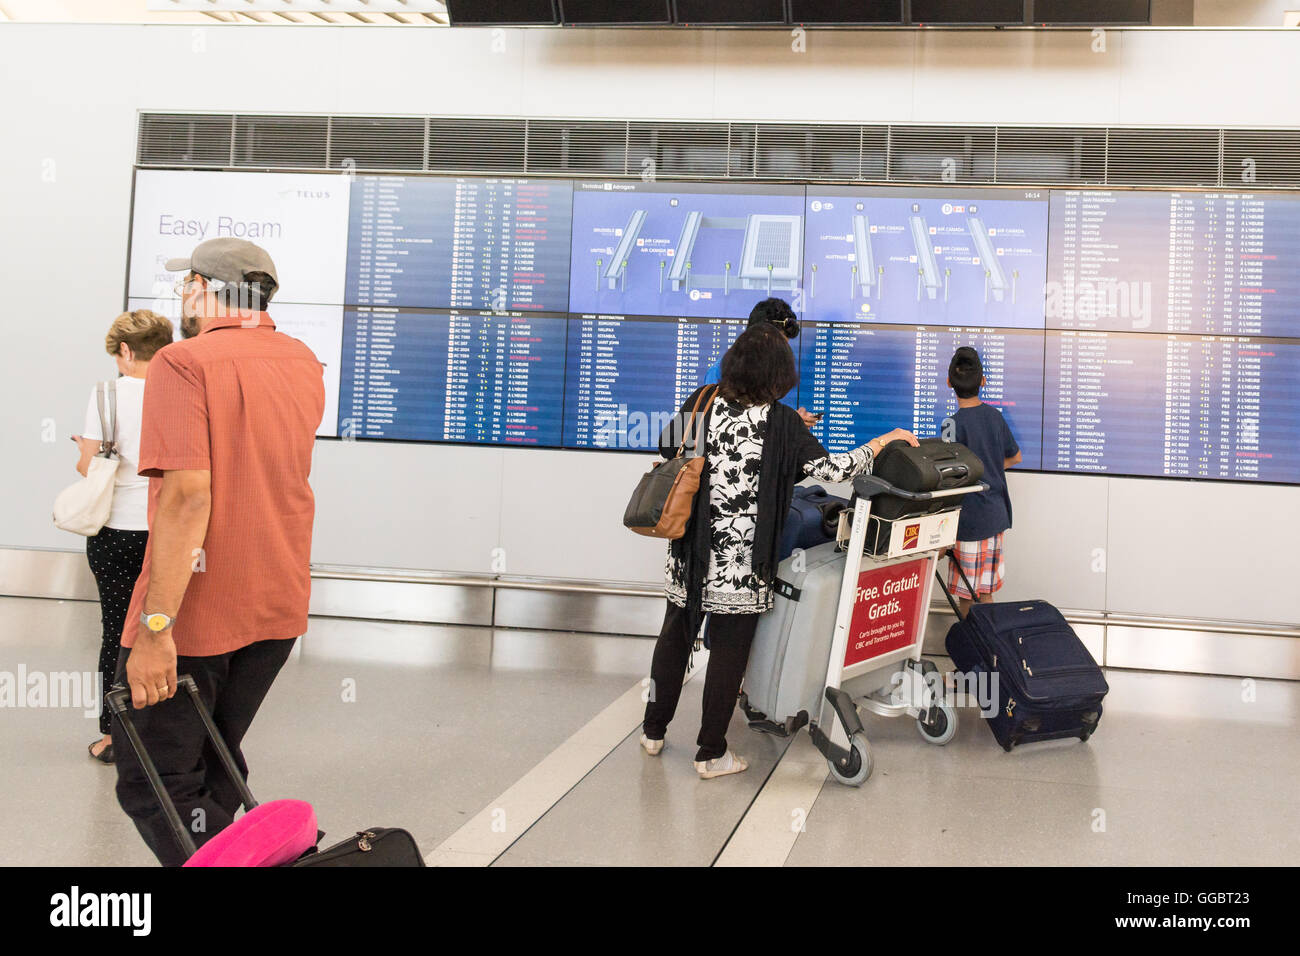 Toronto Pearson International Airport - passenger family looking at departures board in Terminal 1 - Stock Image